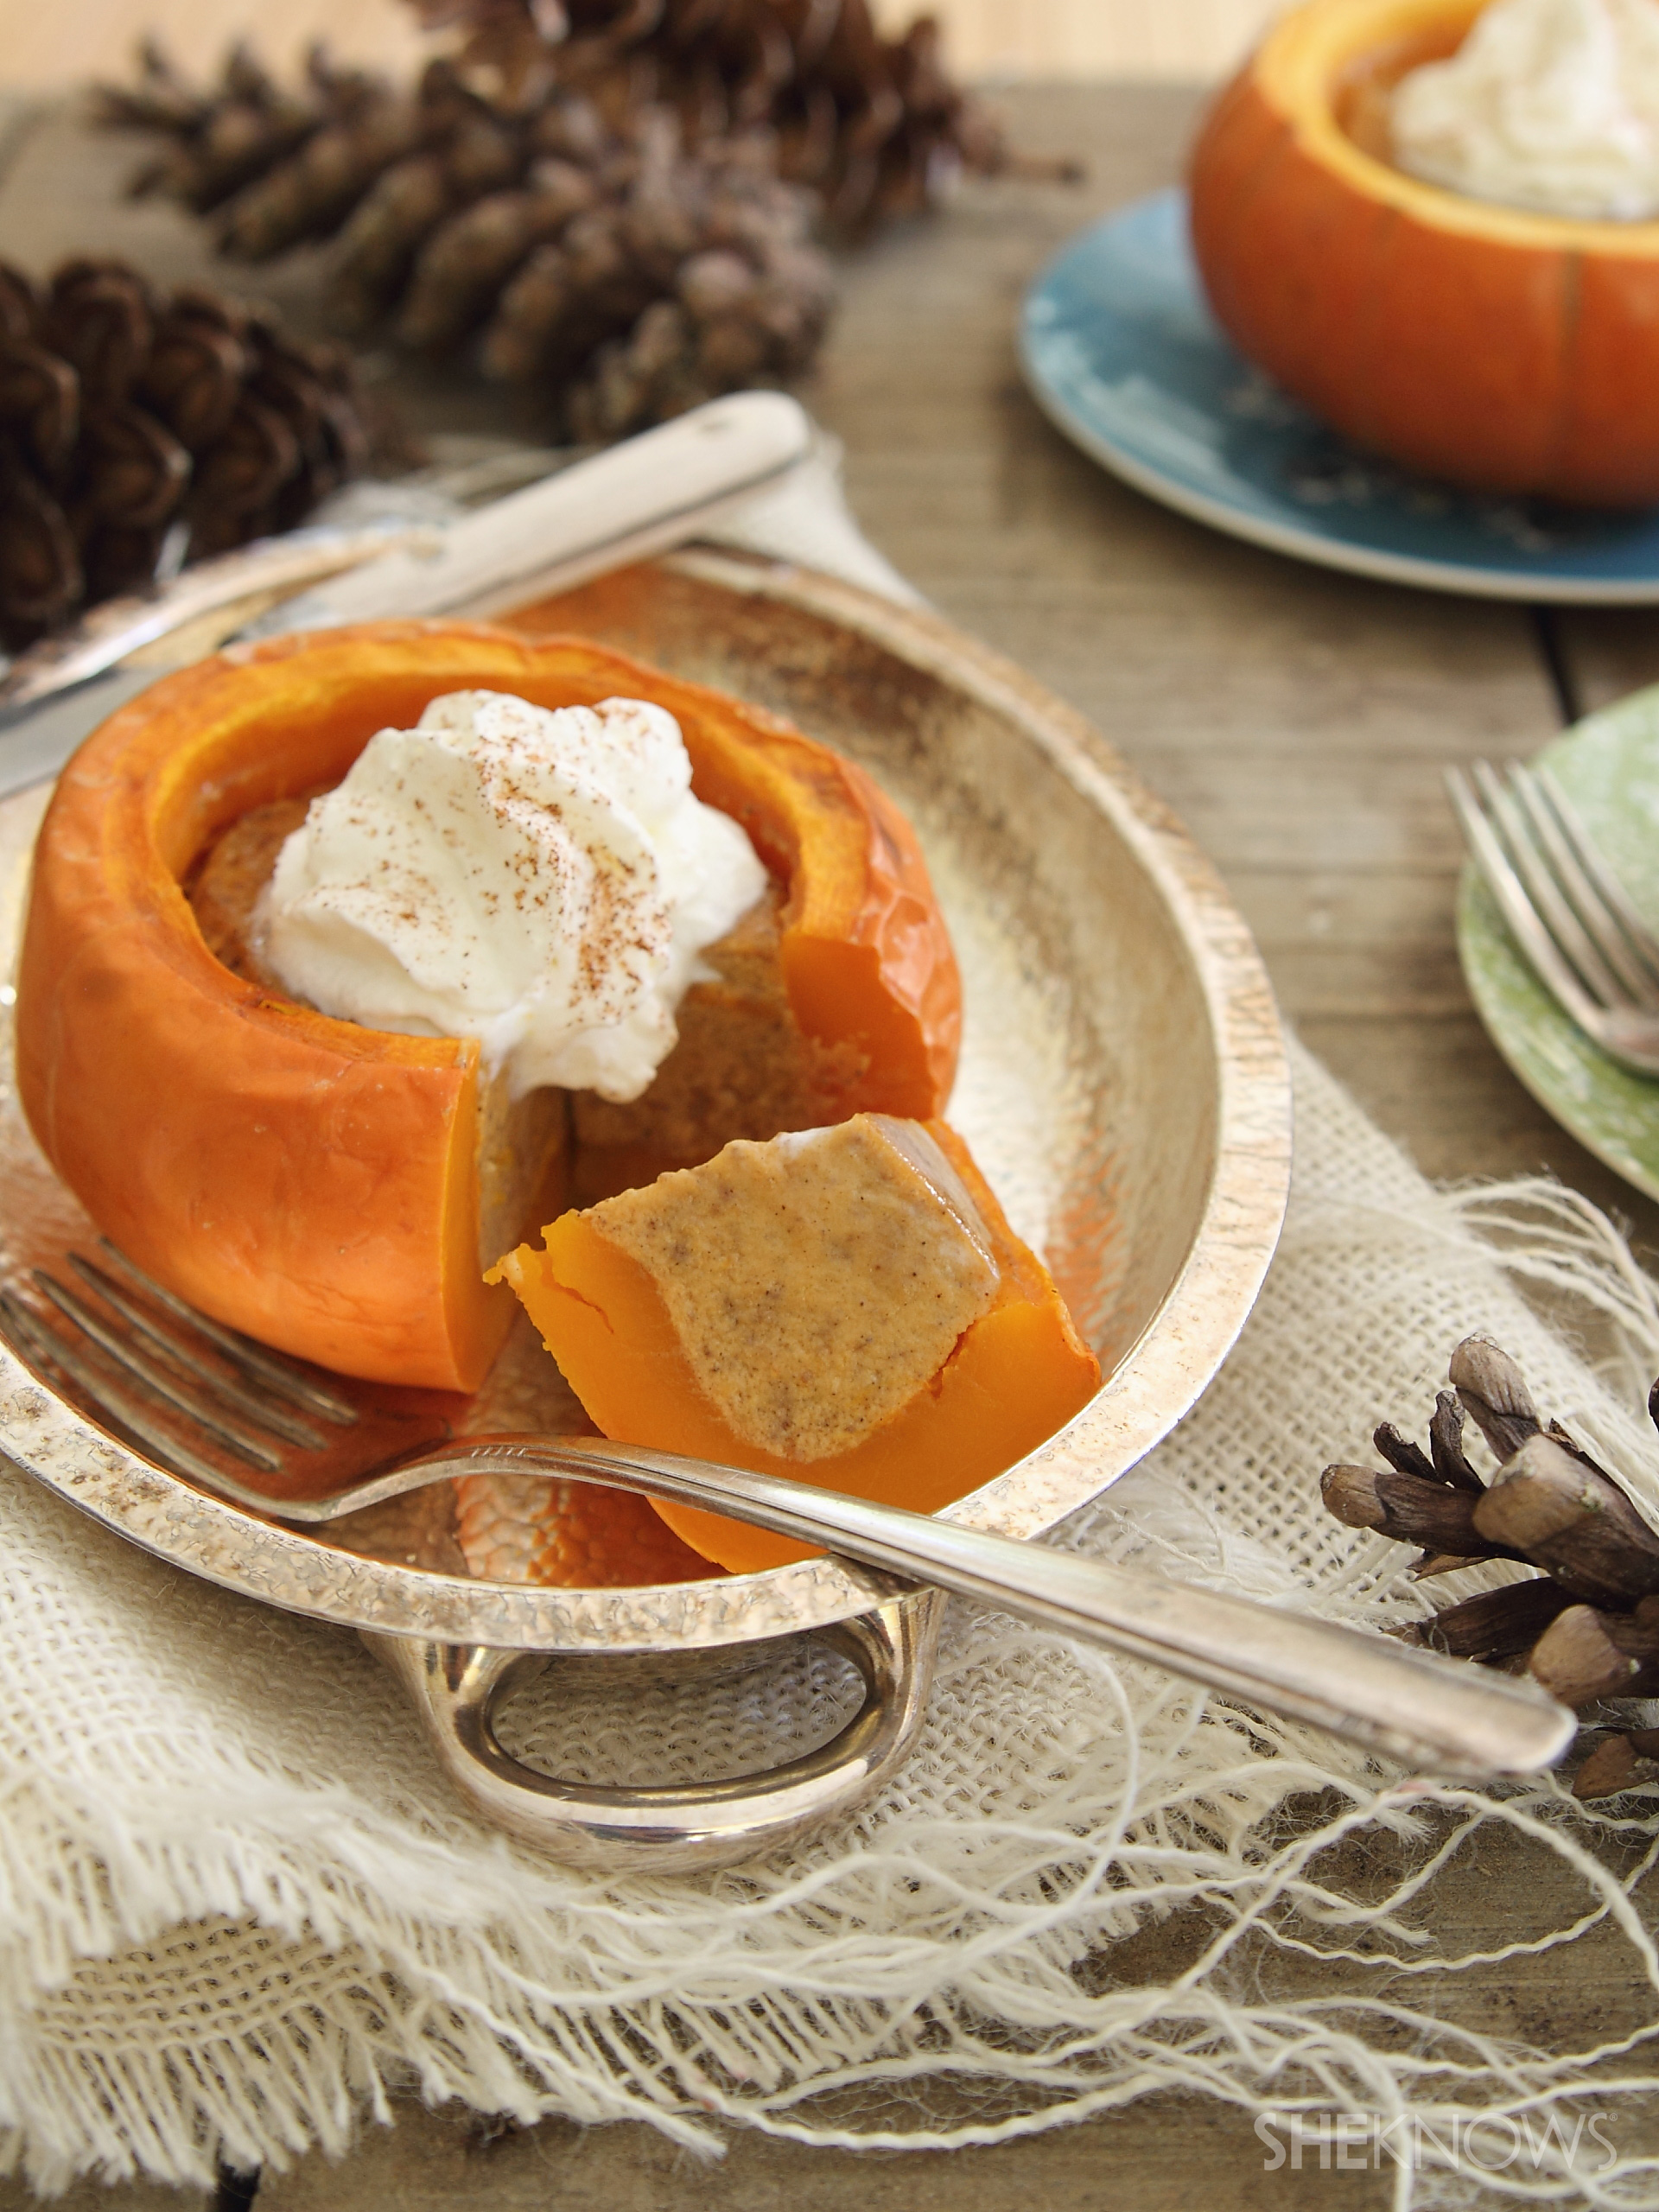 Put everyone's favorite seasonal pie into a mini pumpkin for a very special dessert treat